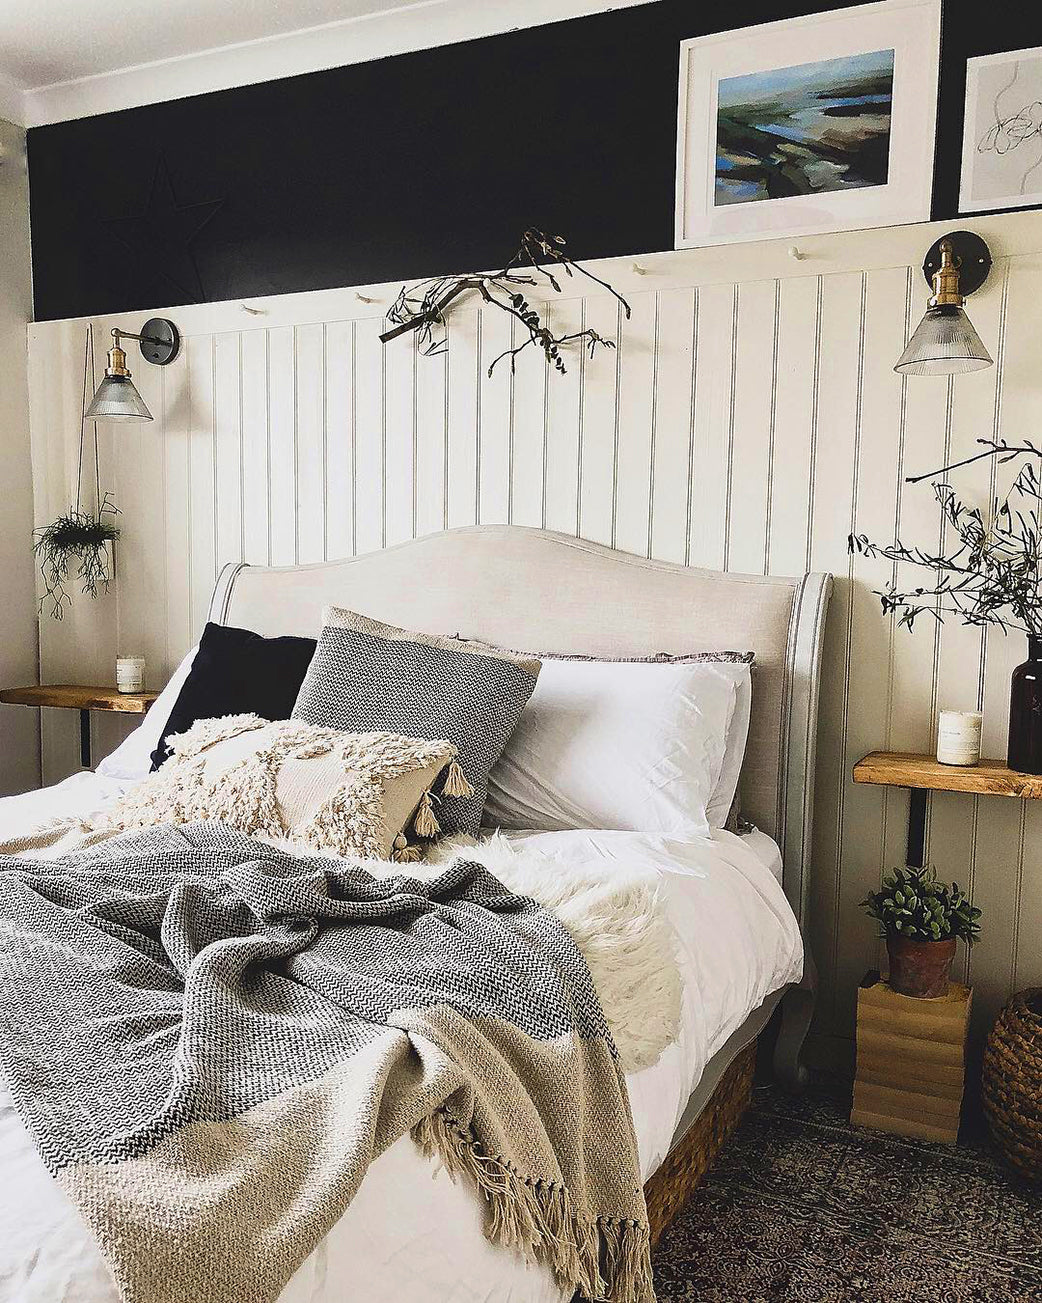 How To Achieve The Hygge Interior Trend In 8 Simple Steps Industville